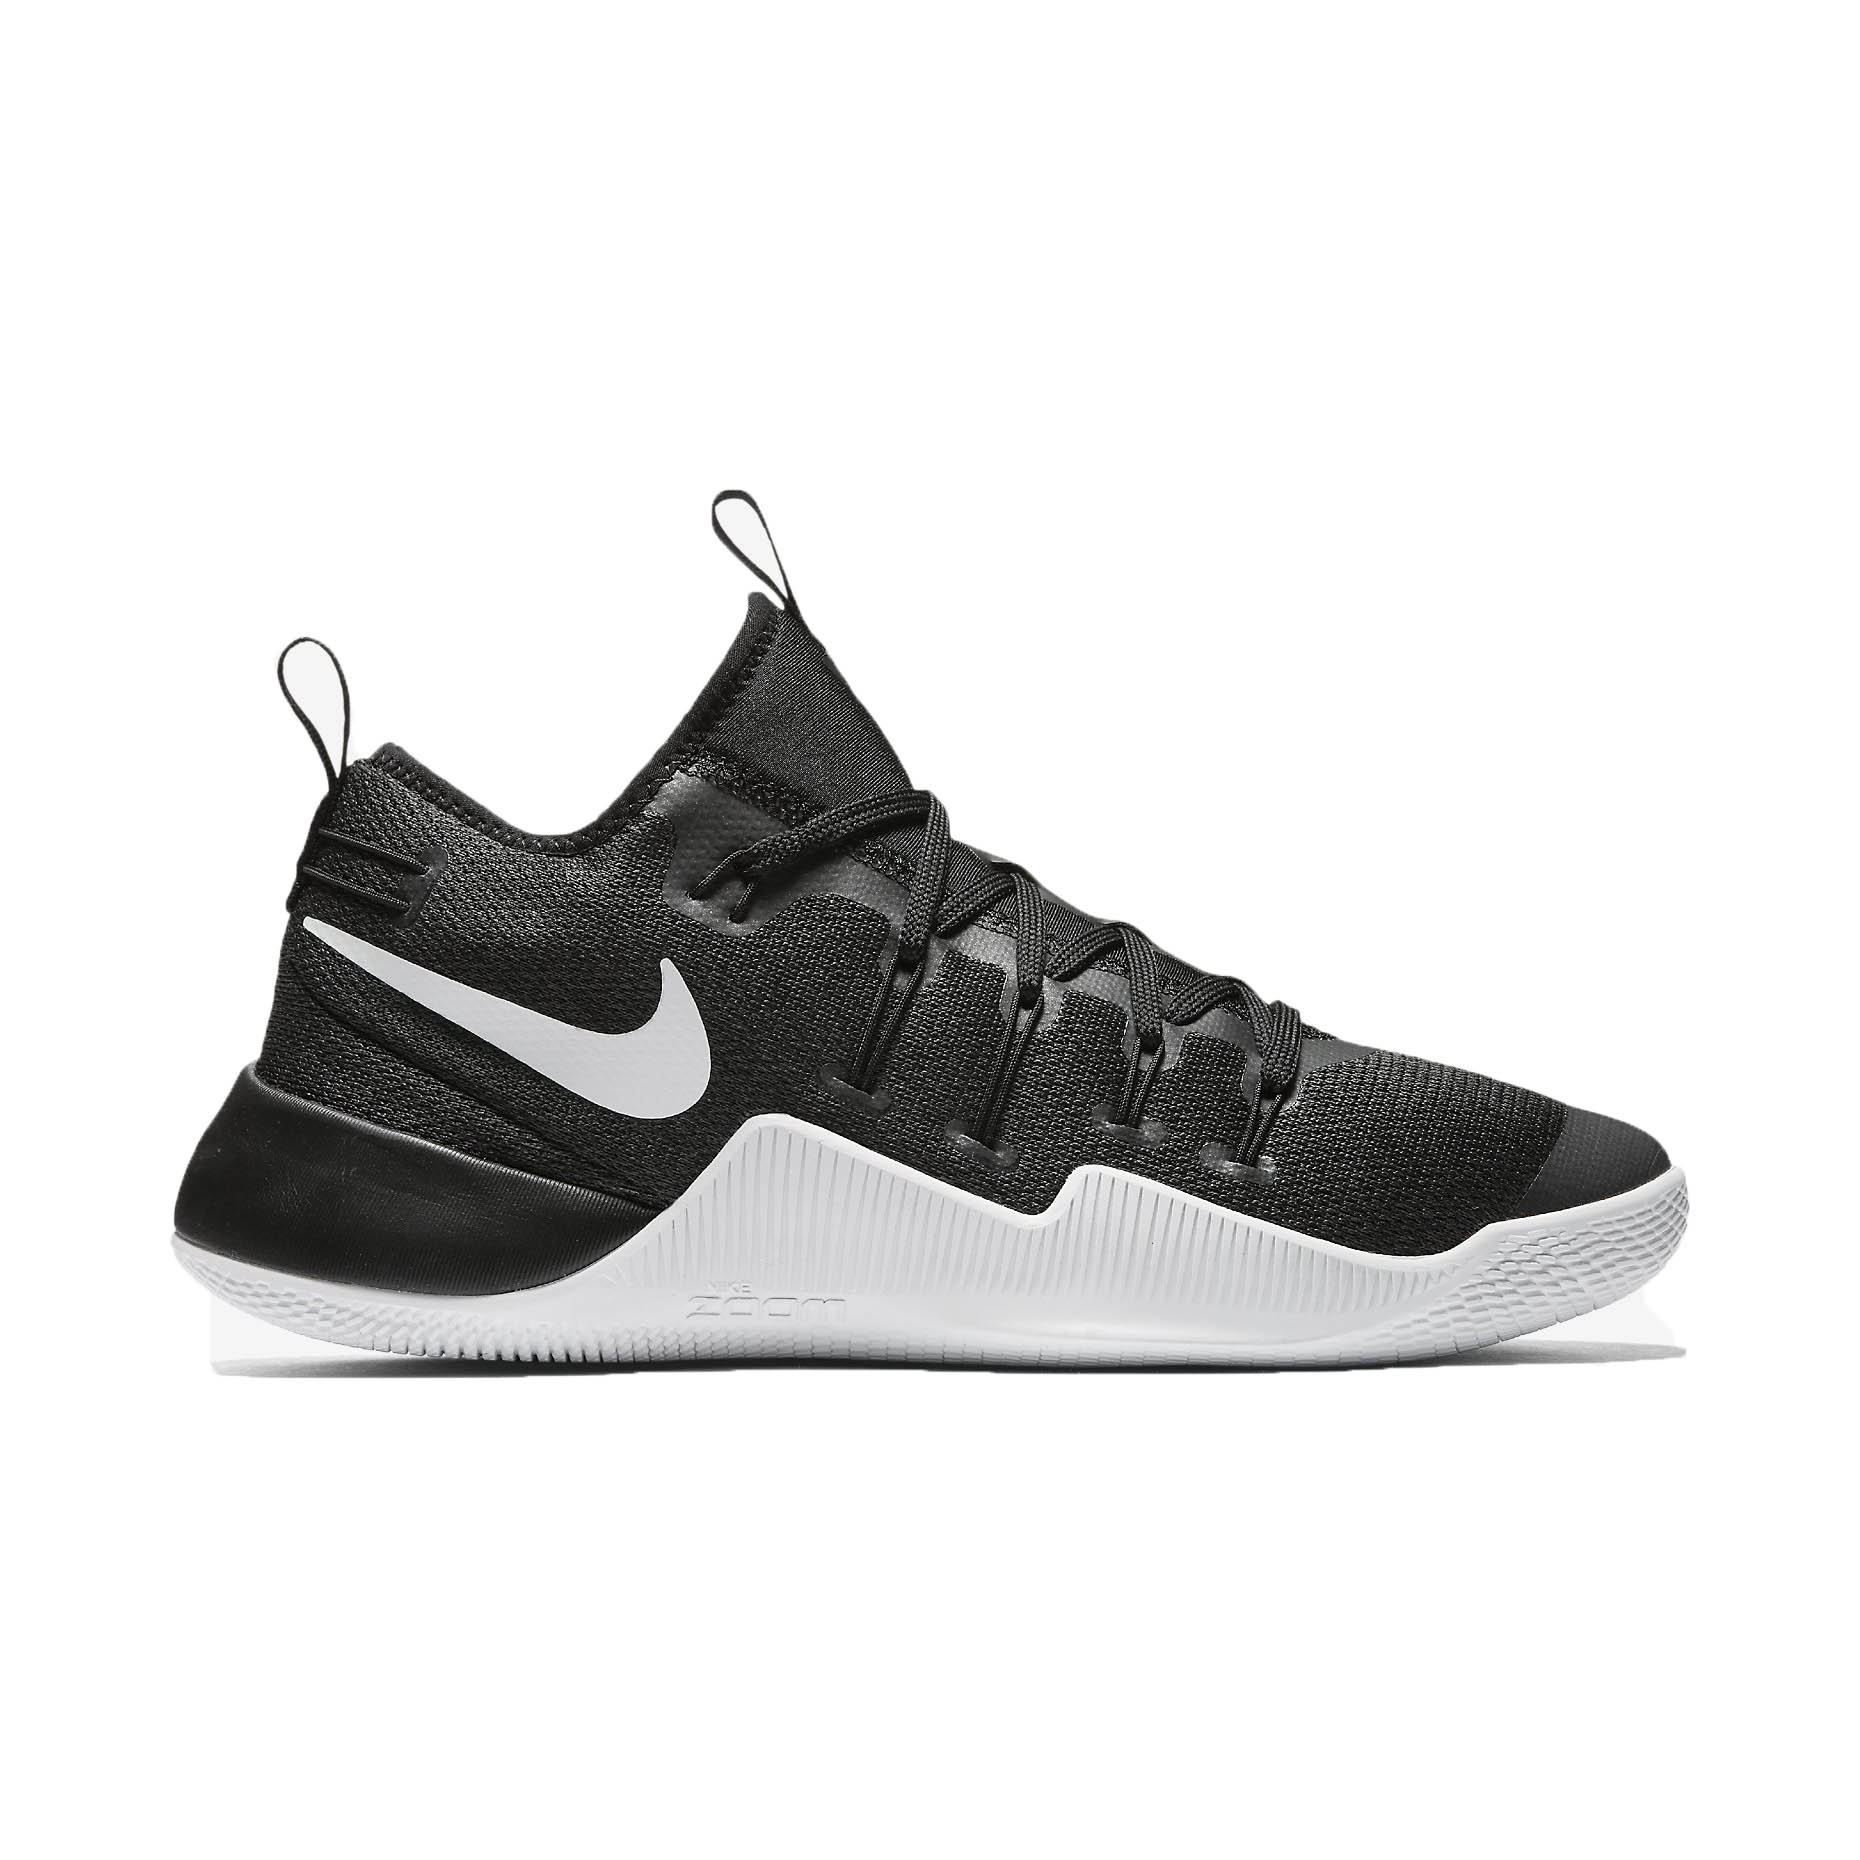 a570276862c ... promo code for nike hypershift gallery 0 92446 bf2d0